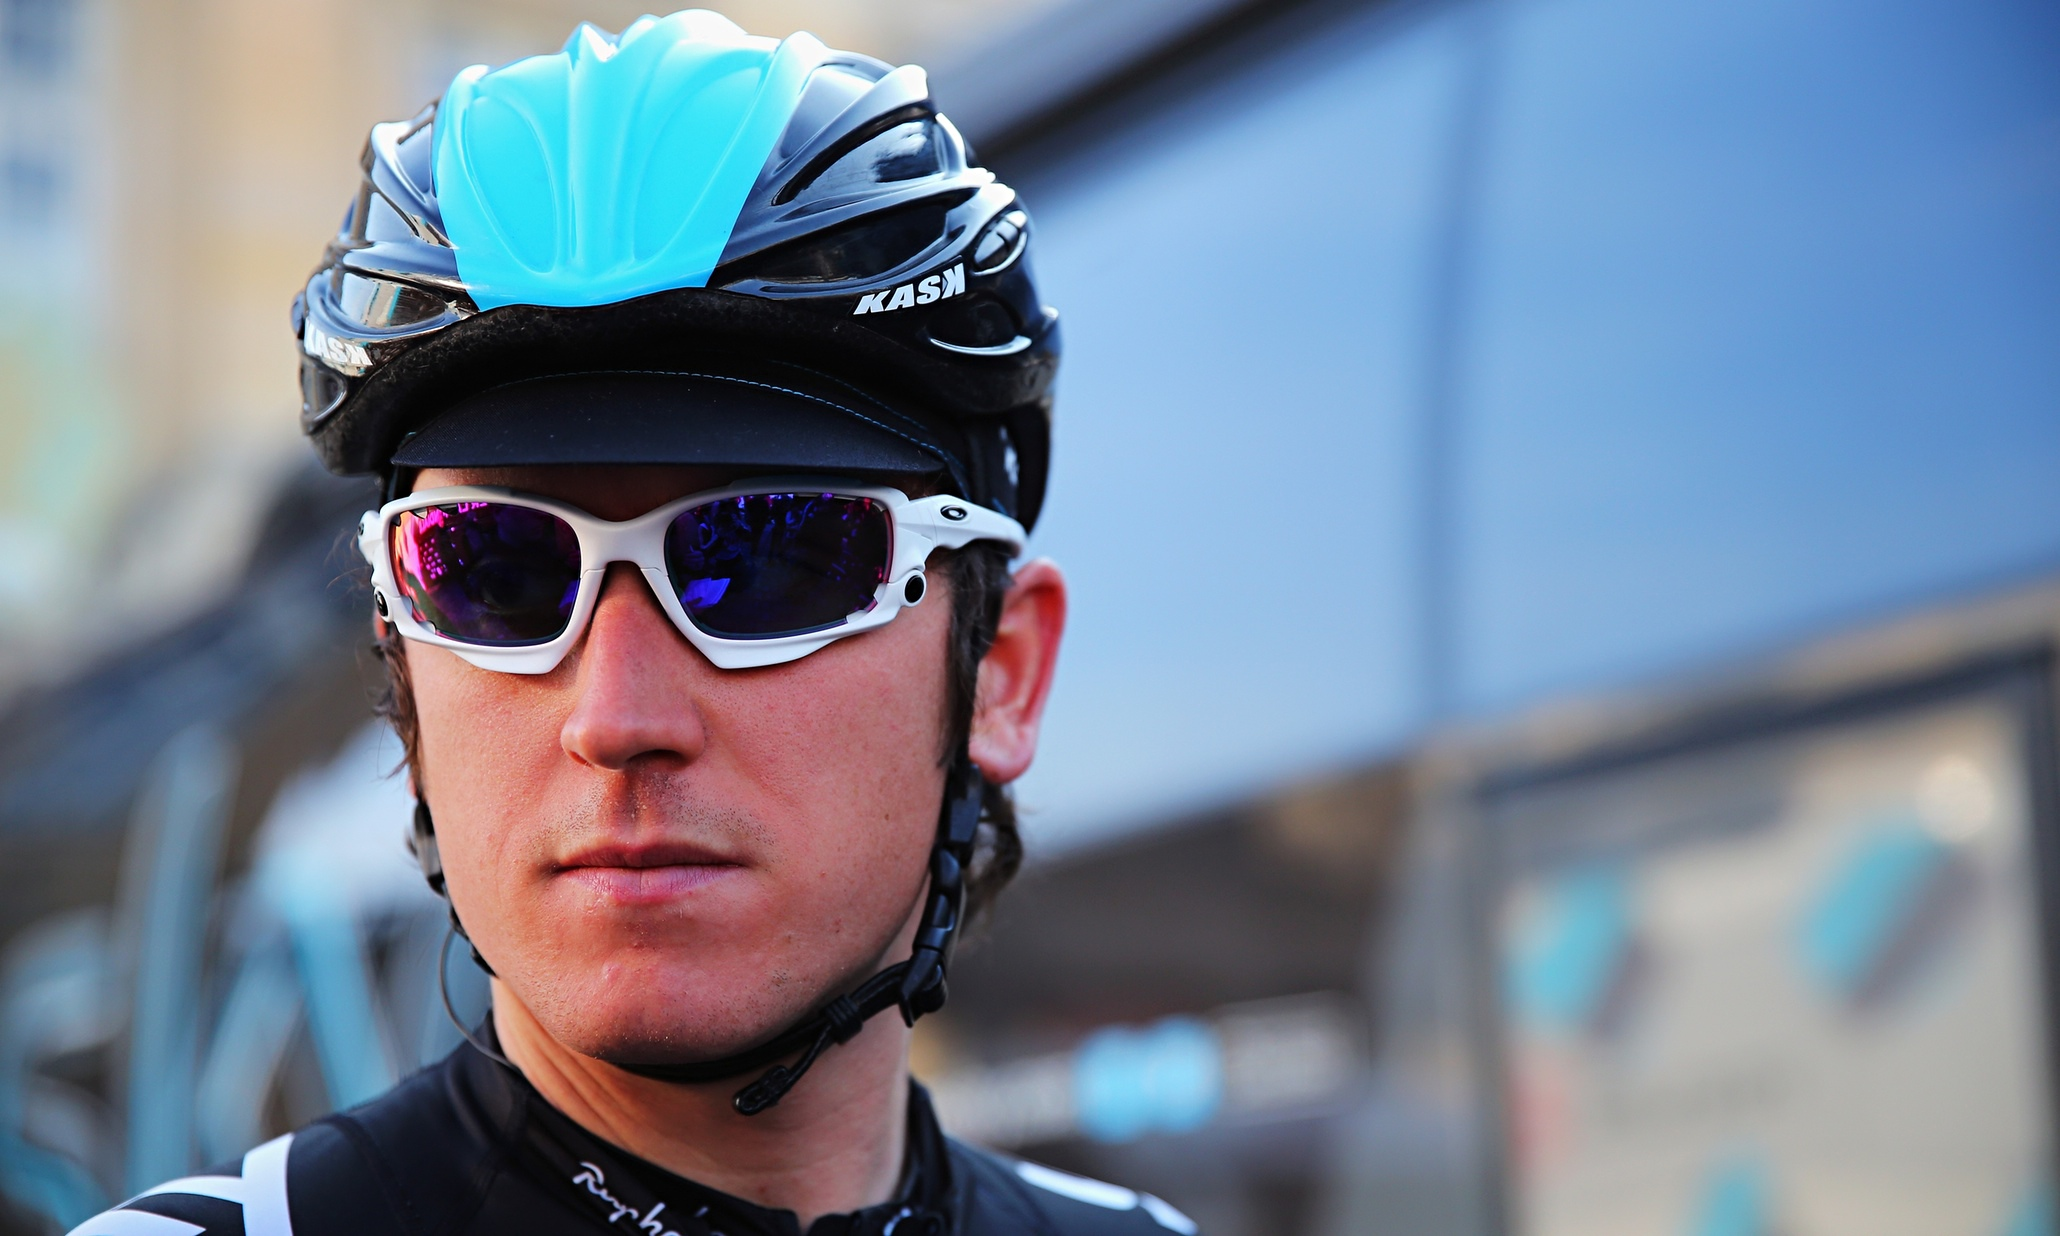 Geraint Thomas earned a  million dollar salary, leaving the net worth at 0.2 million in 2017